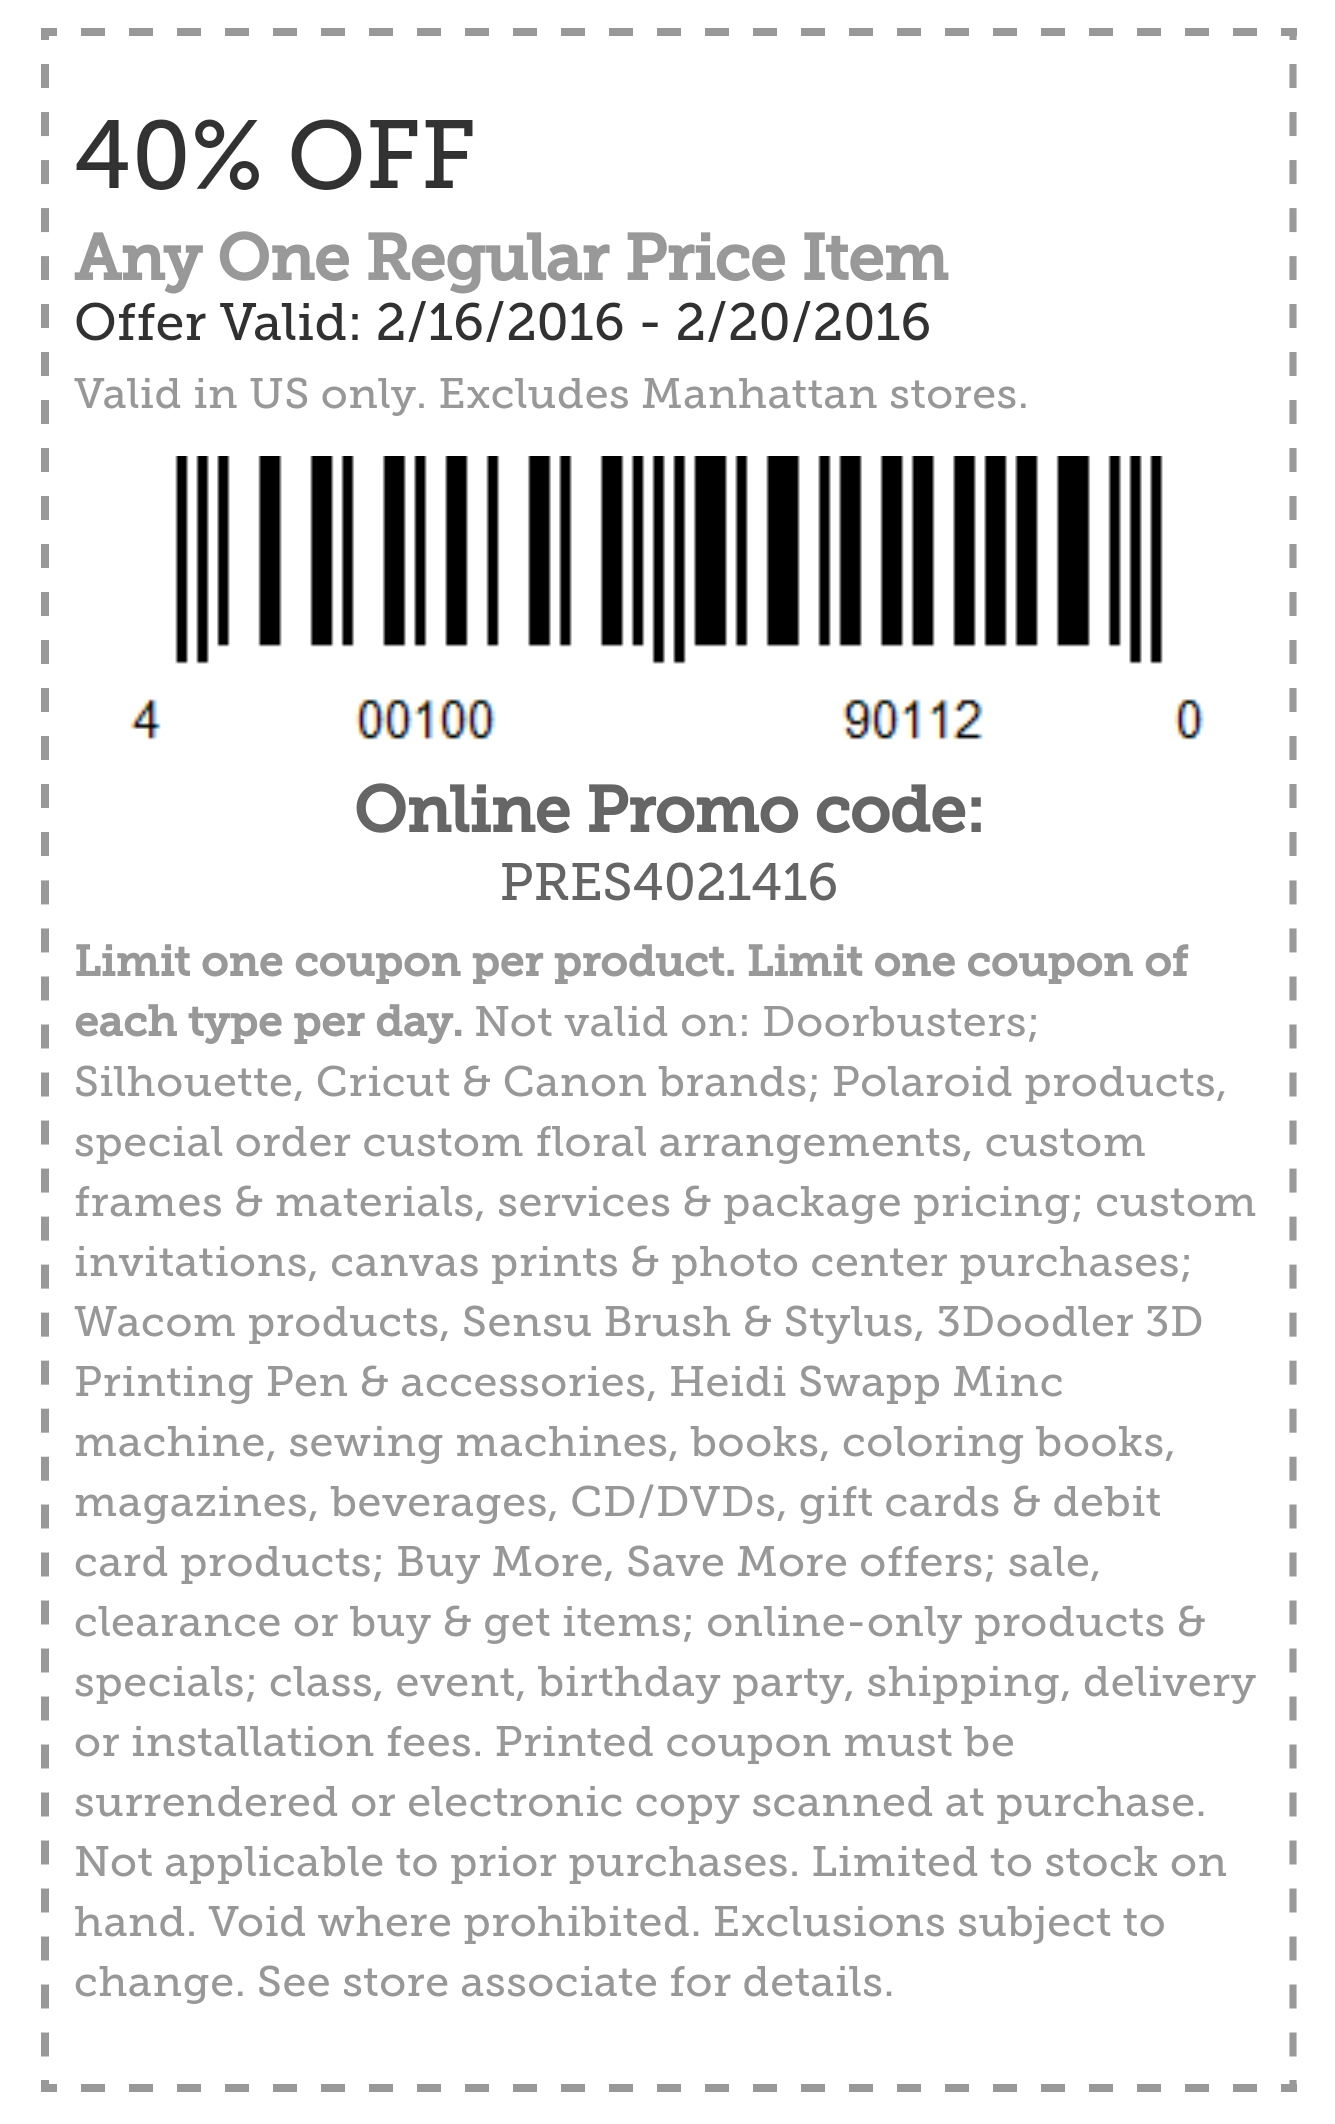 Michaels Coupon March 2017 40% off a single item at Michaels, or online via promo code PRES4021416